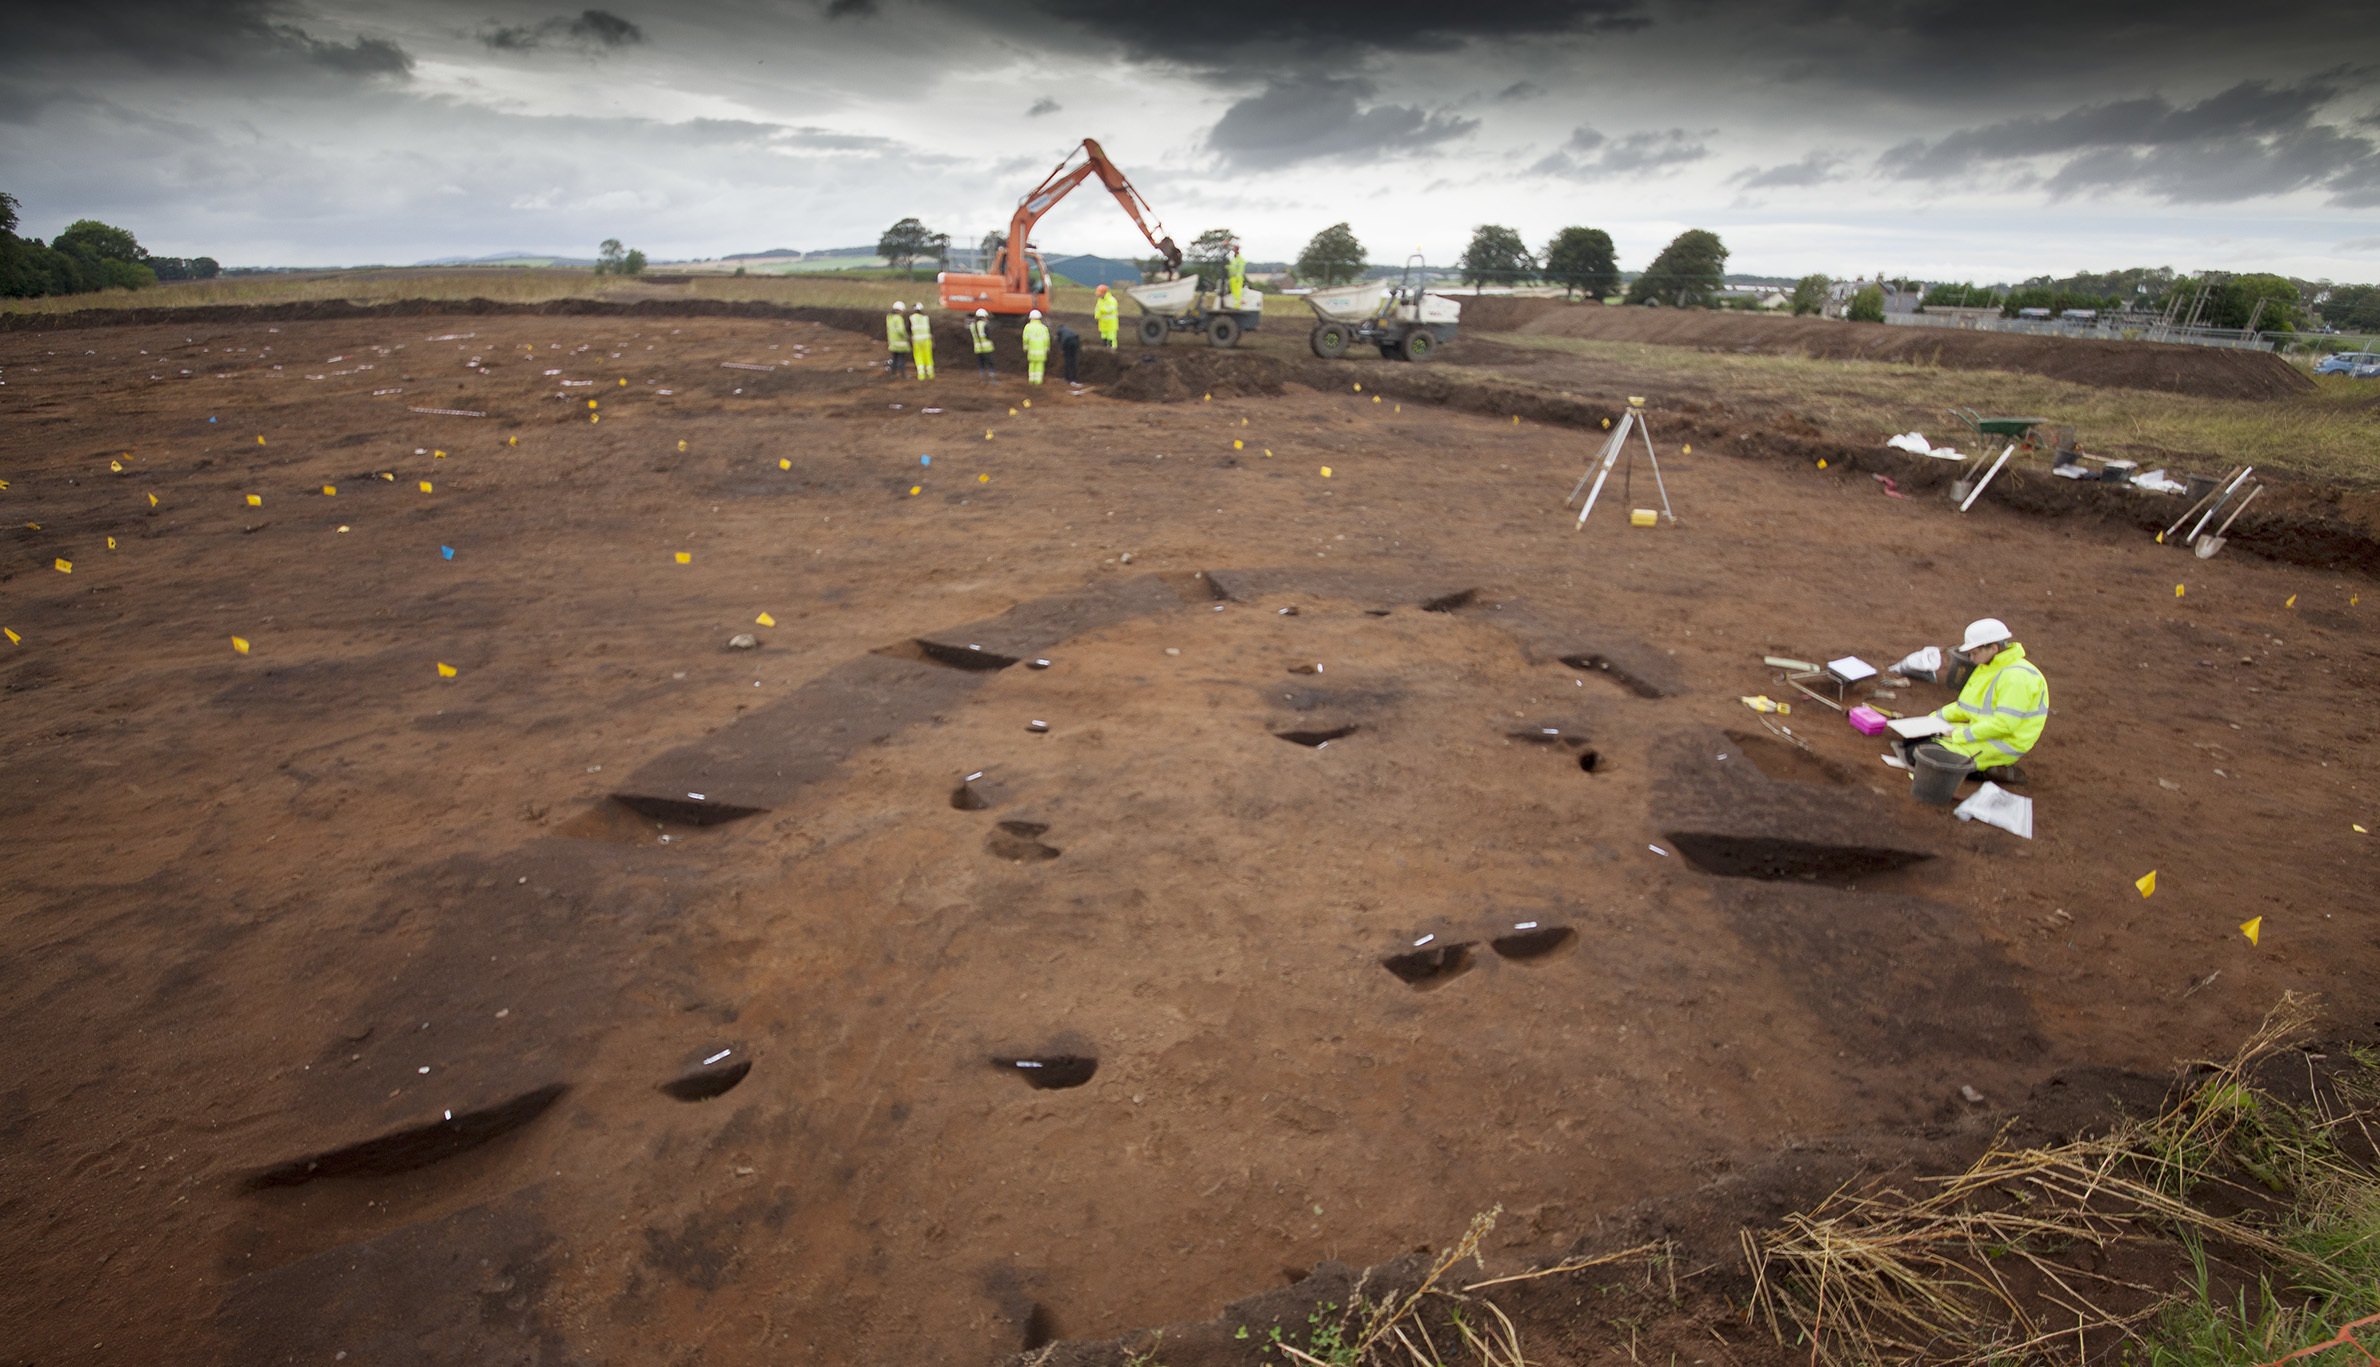 The scene of the previous dig which unearthed significant finds